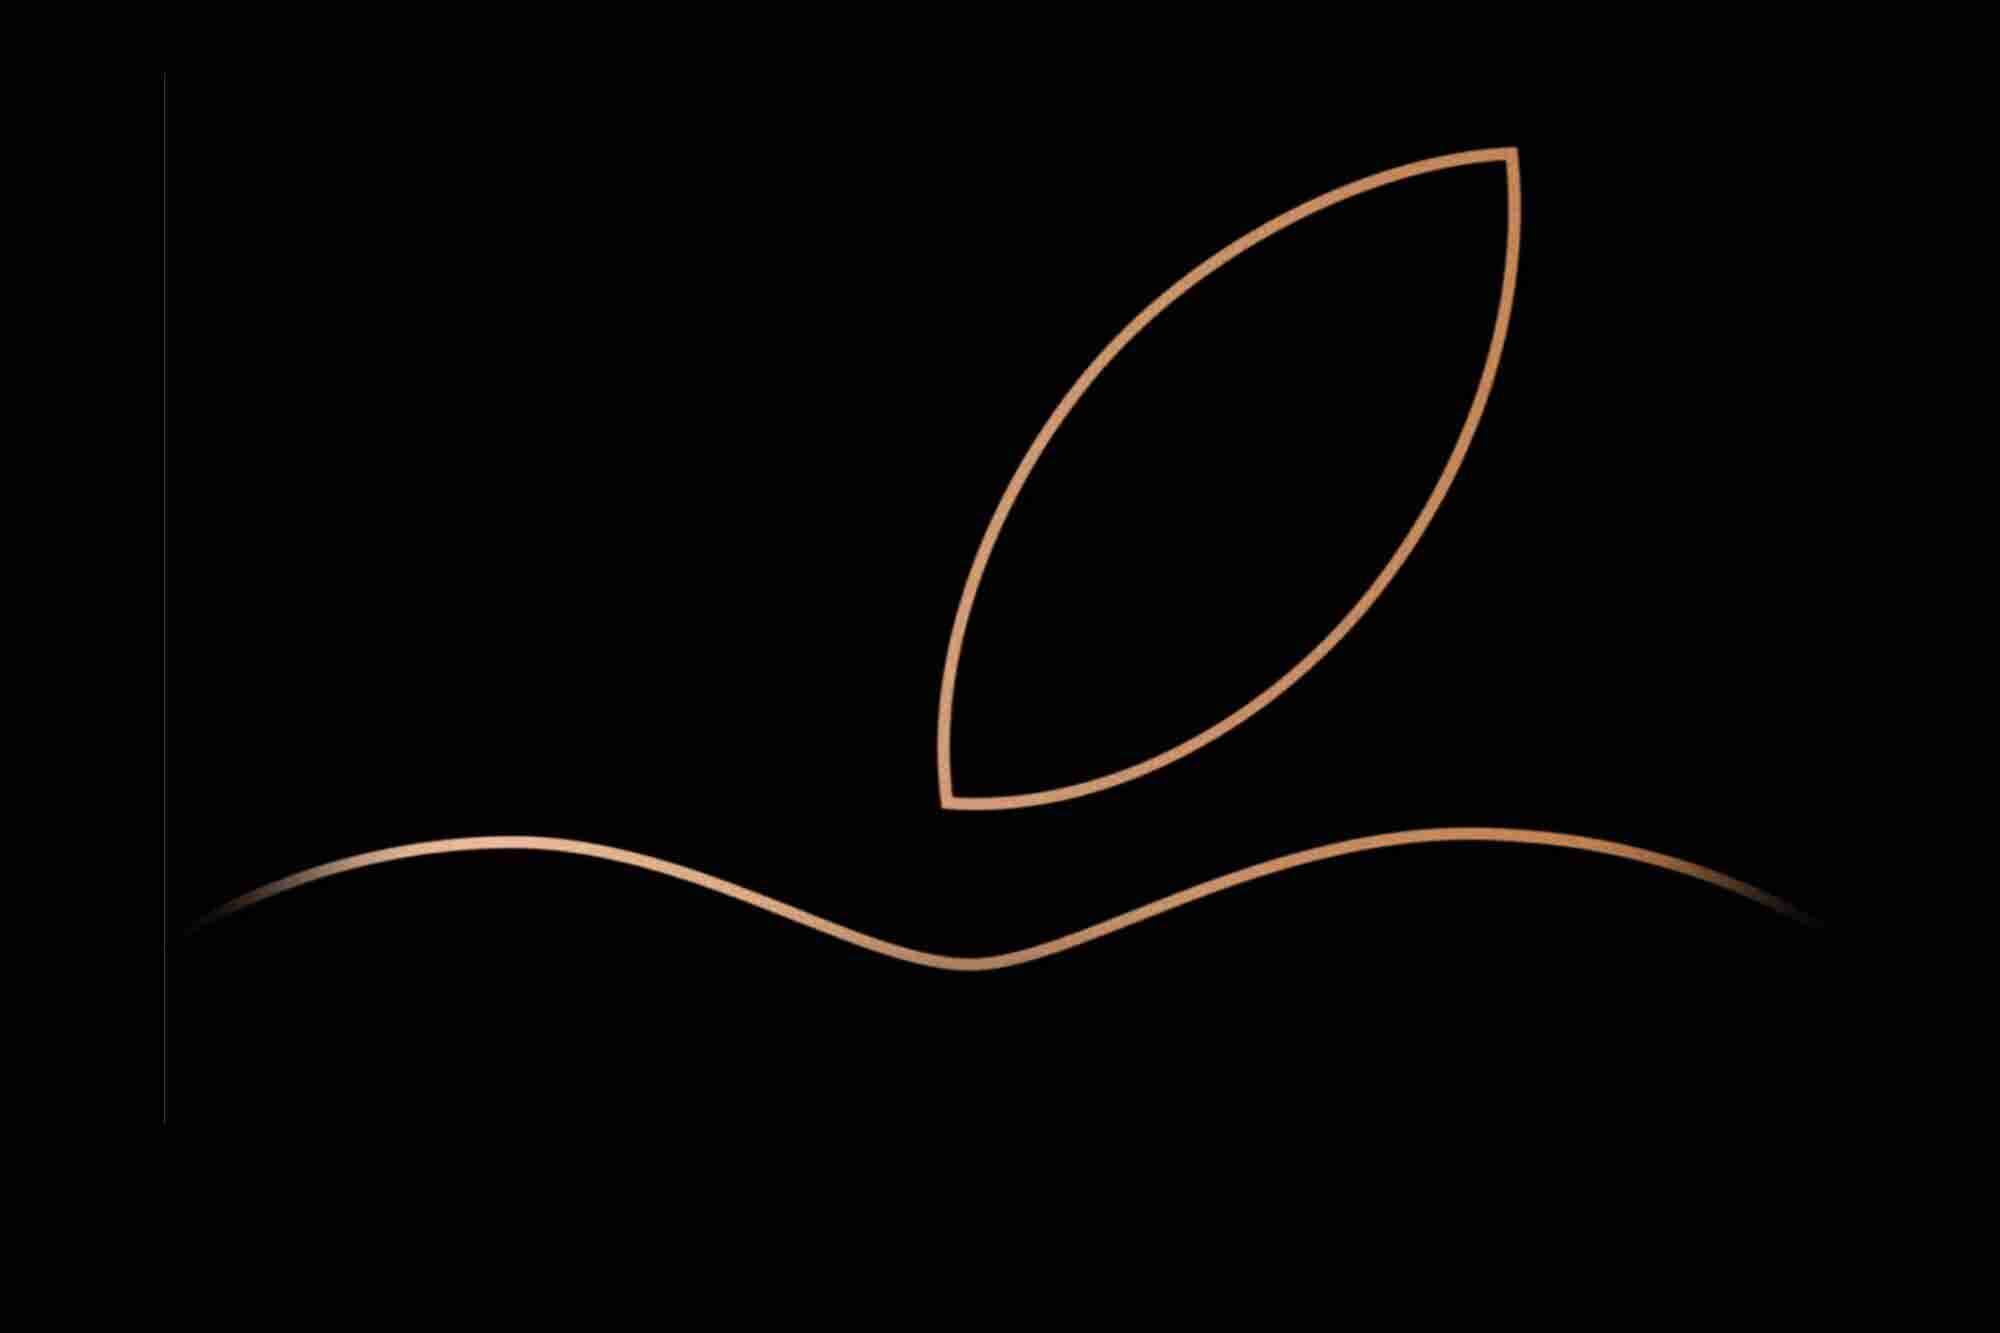 How to Watch Apple's iPhone Event